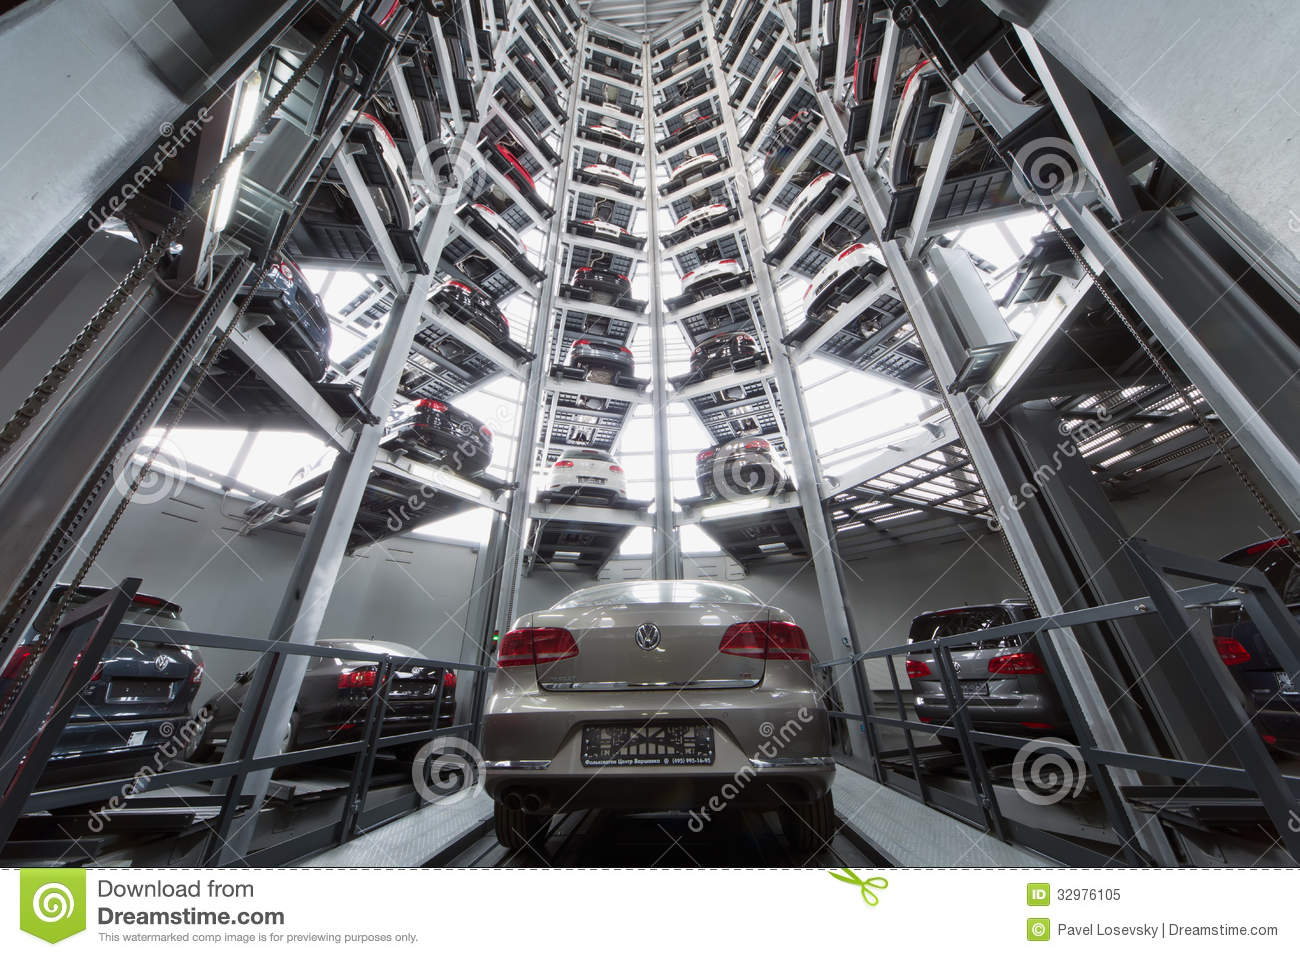 Volkswagen Passat In The Center Of The Tower To Store Cars Editorial Image - Image: 32976105